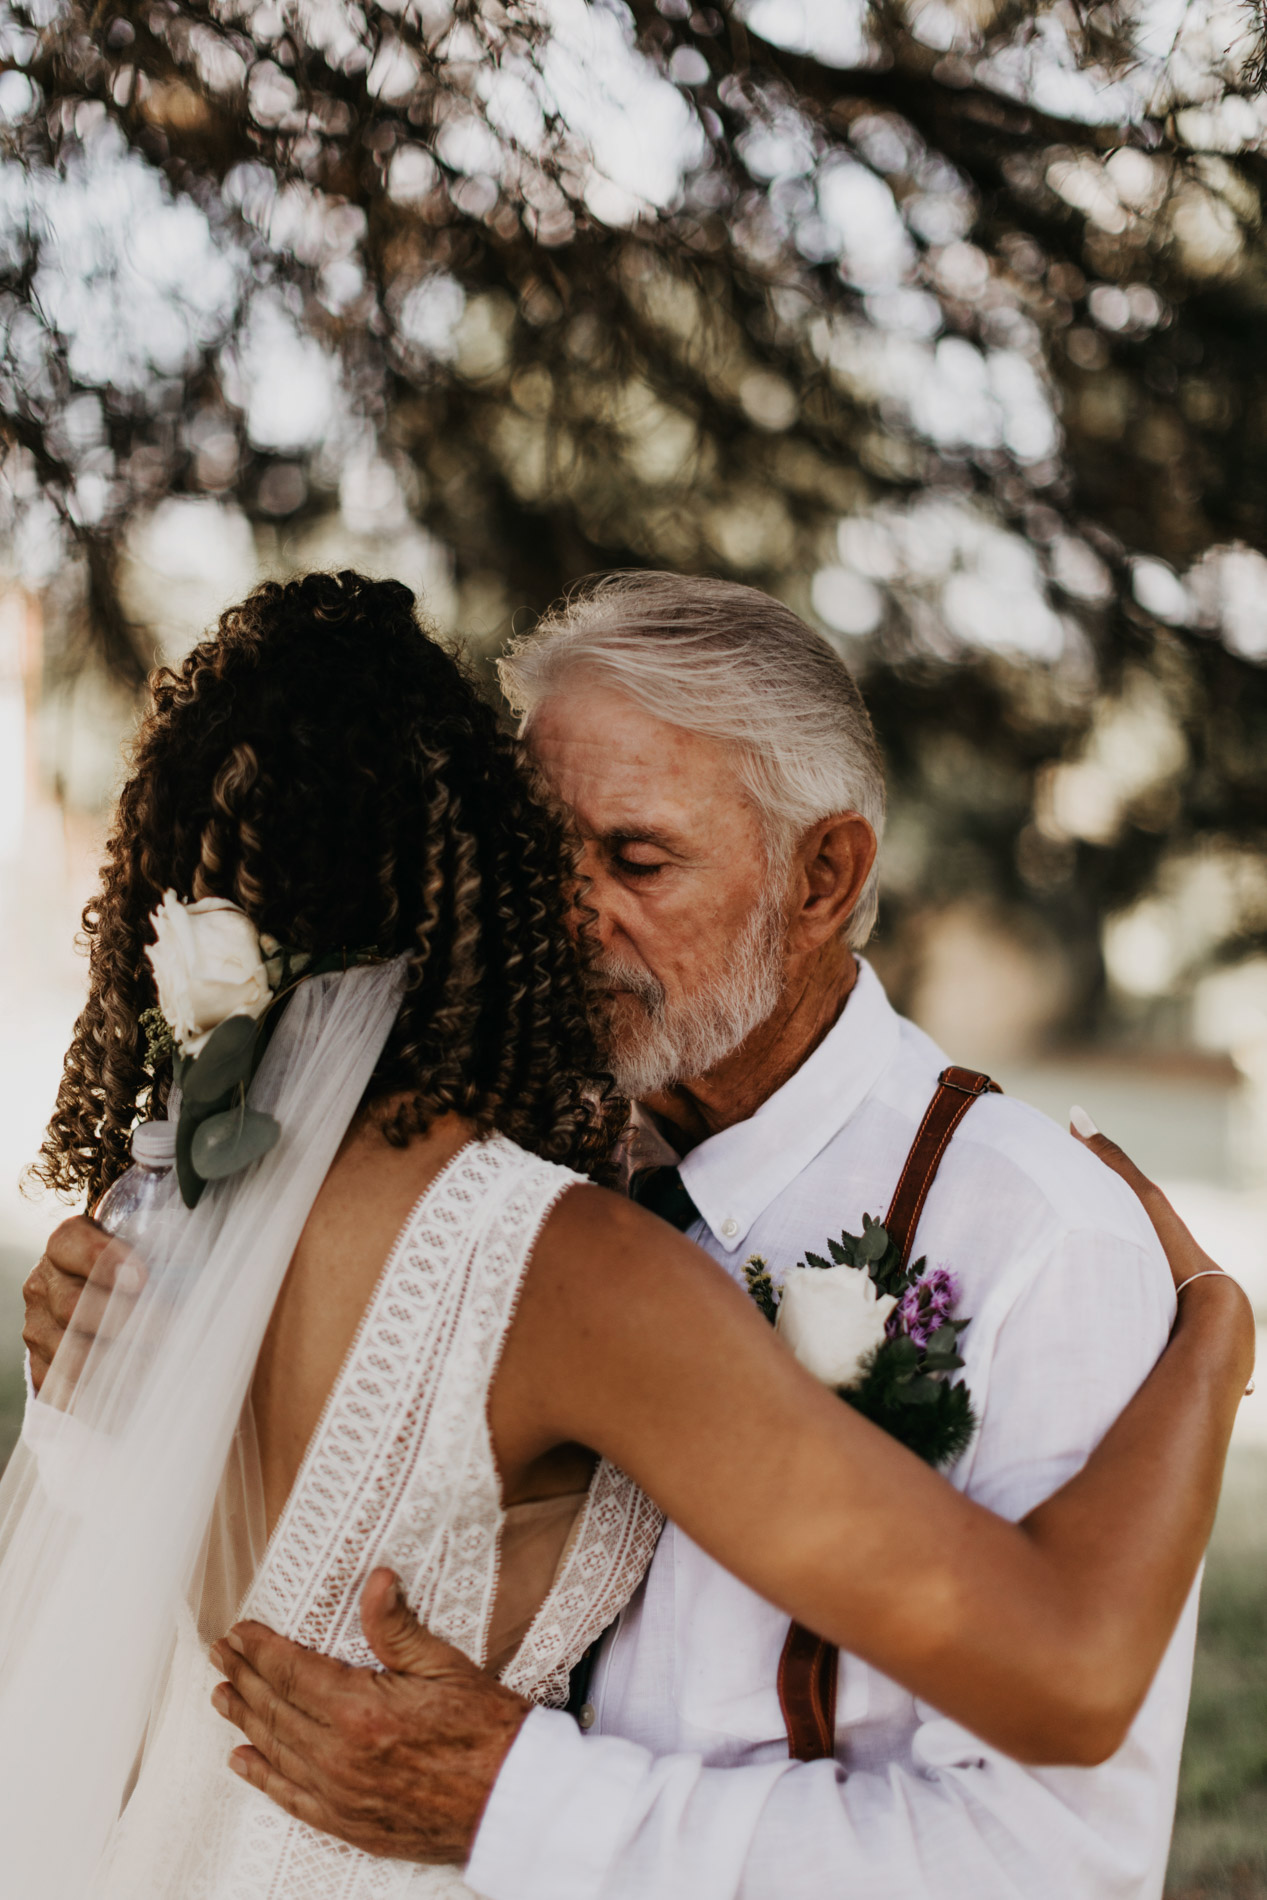 Grandpa seeing granddaughter for first time on wedding day